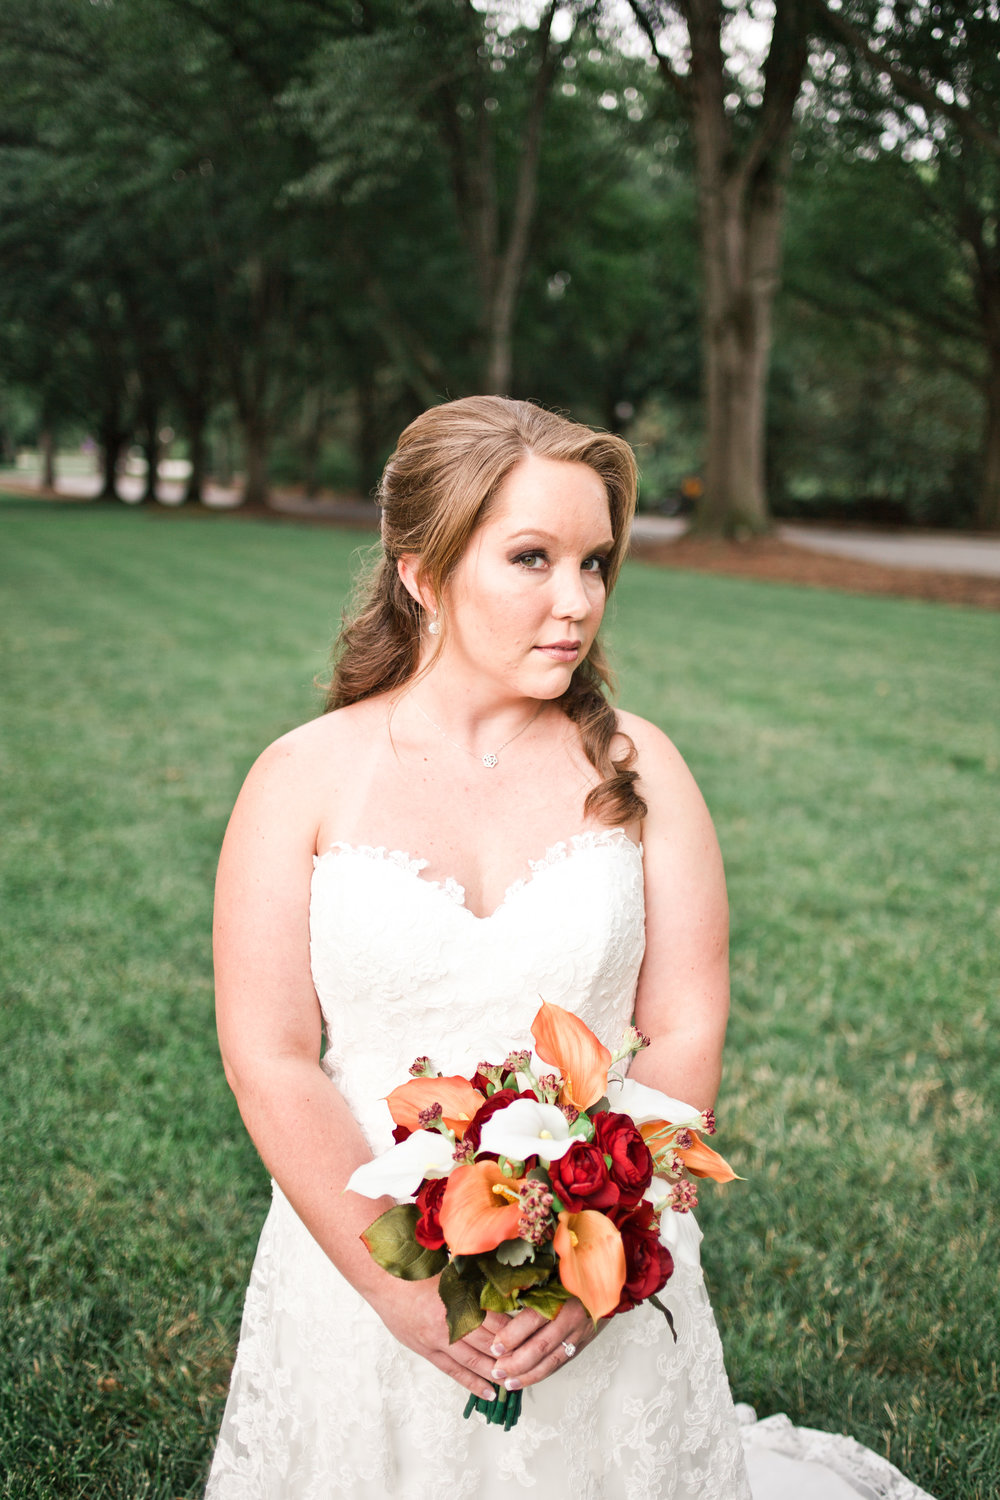 gabbie_bridal_poured_out_photography-18.jpg